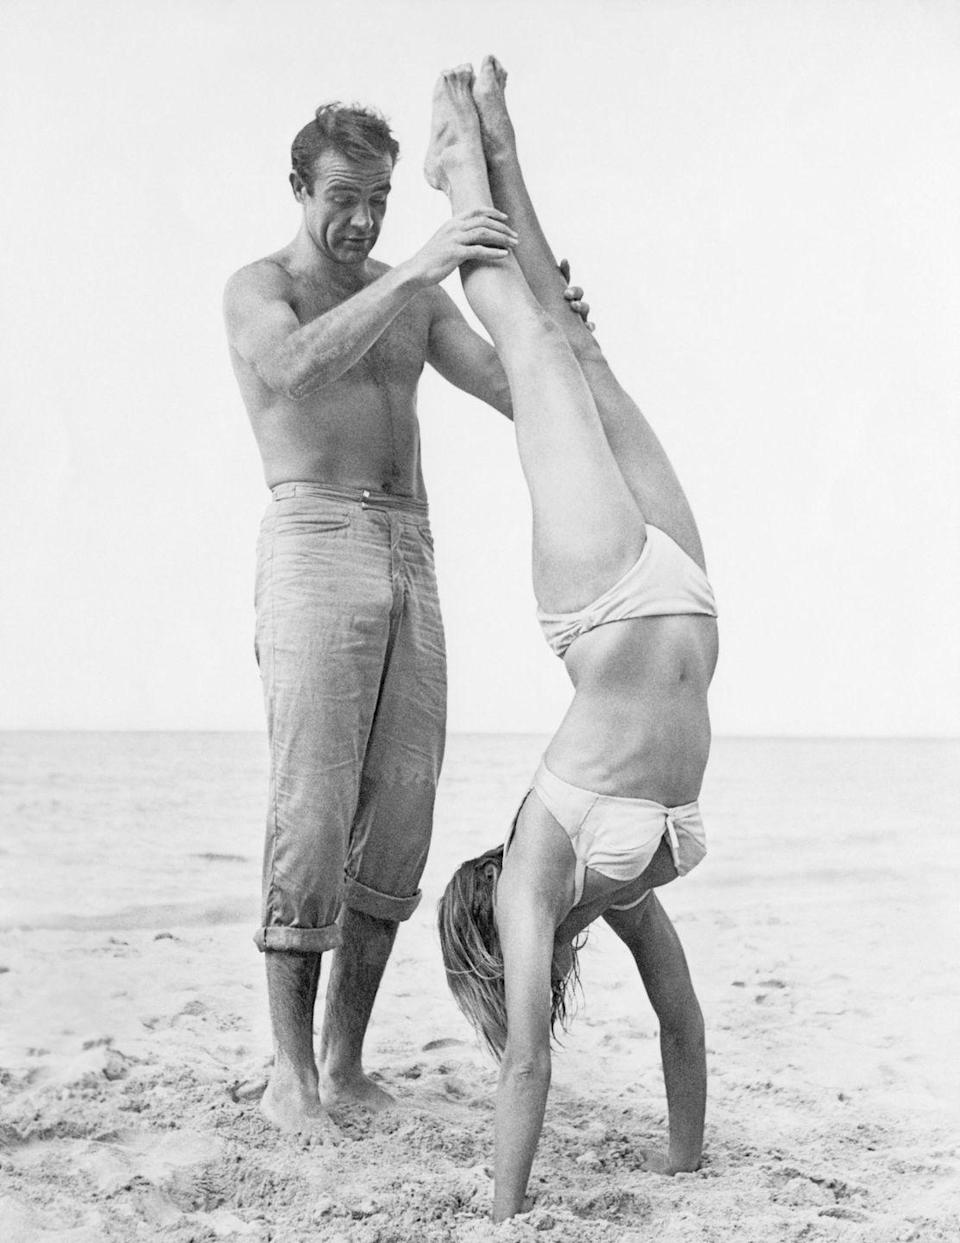 <p>Sean Connery holds Ursula Andress while she does a handstand on a beach in a white bikini on the set of the film Dr. No.</p>